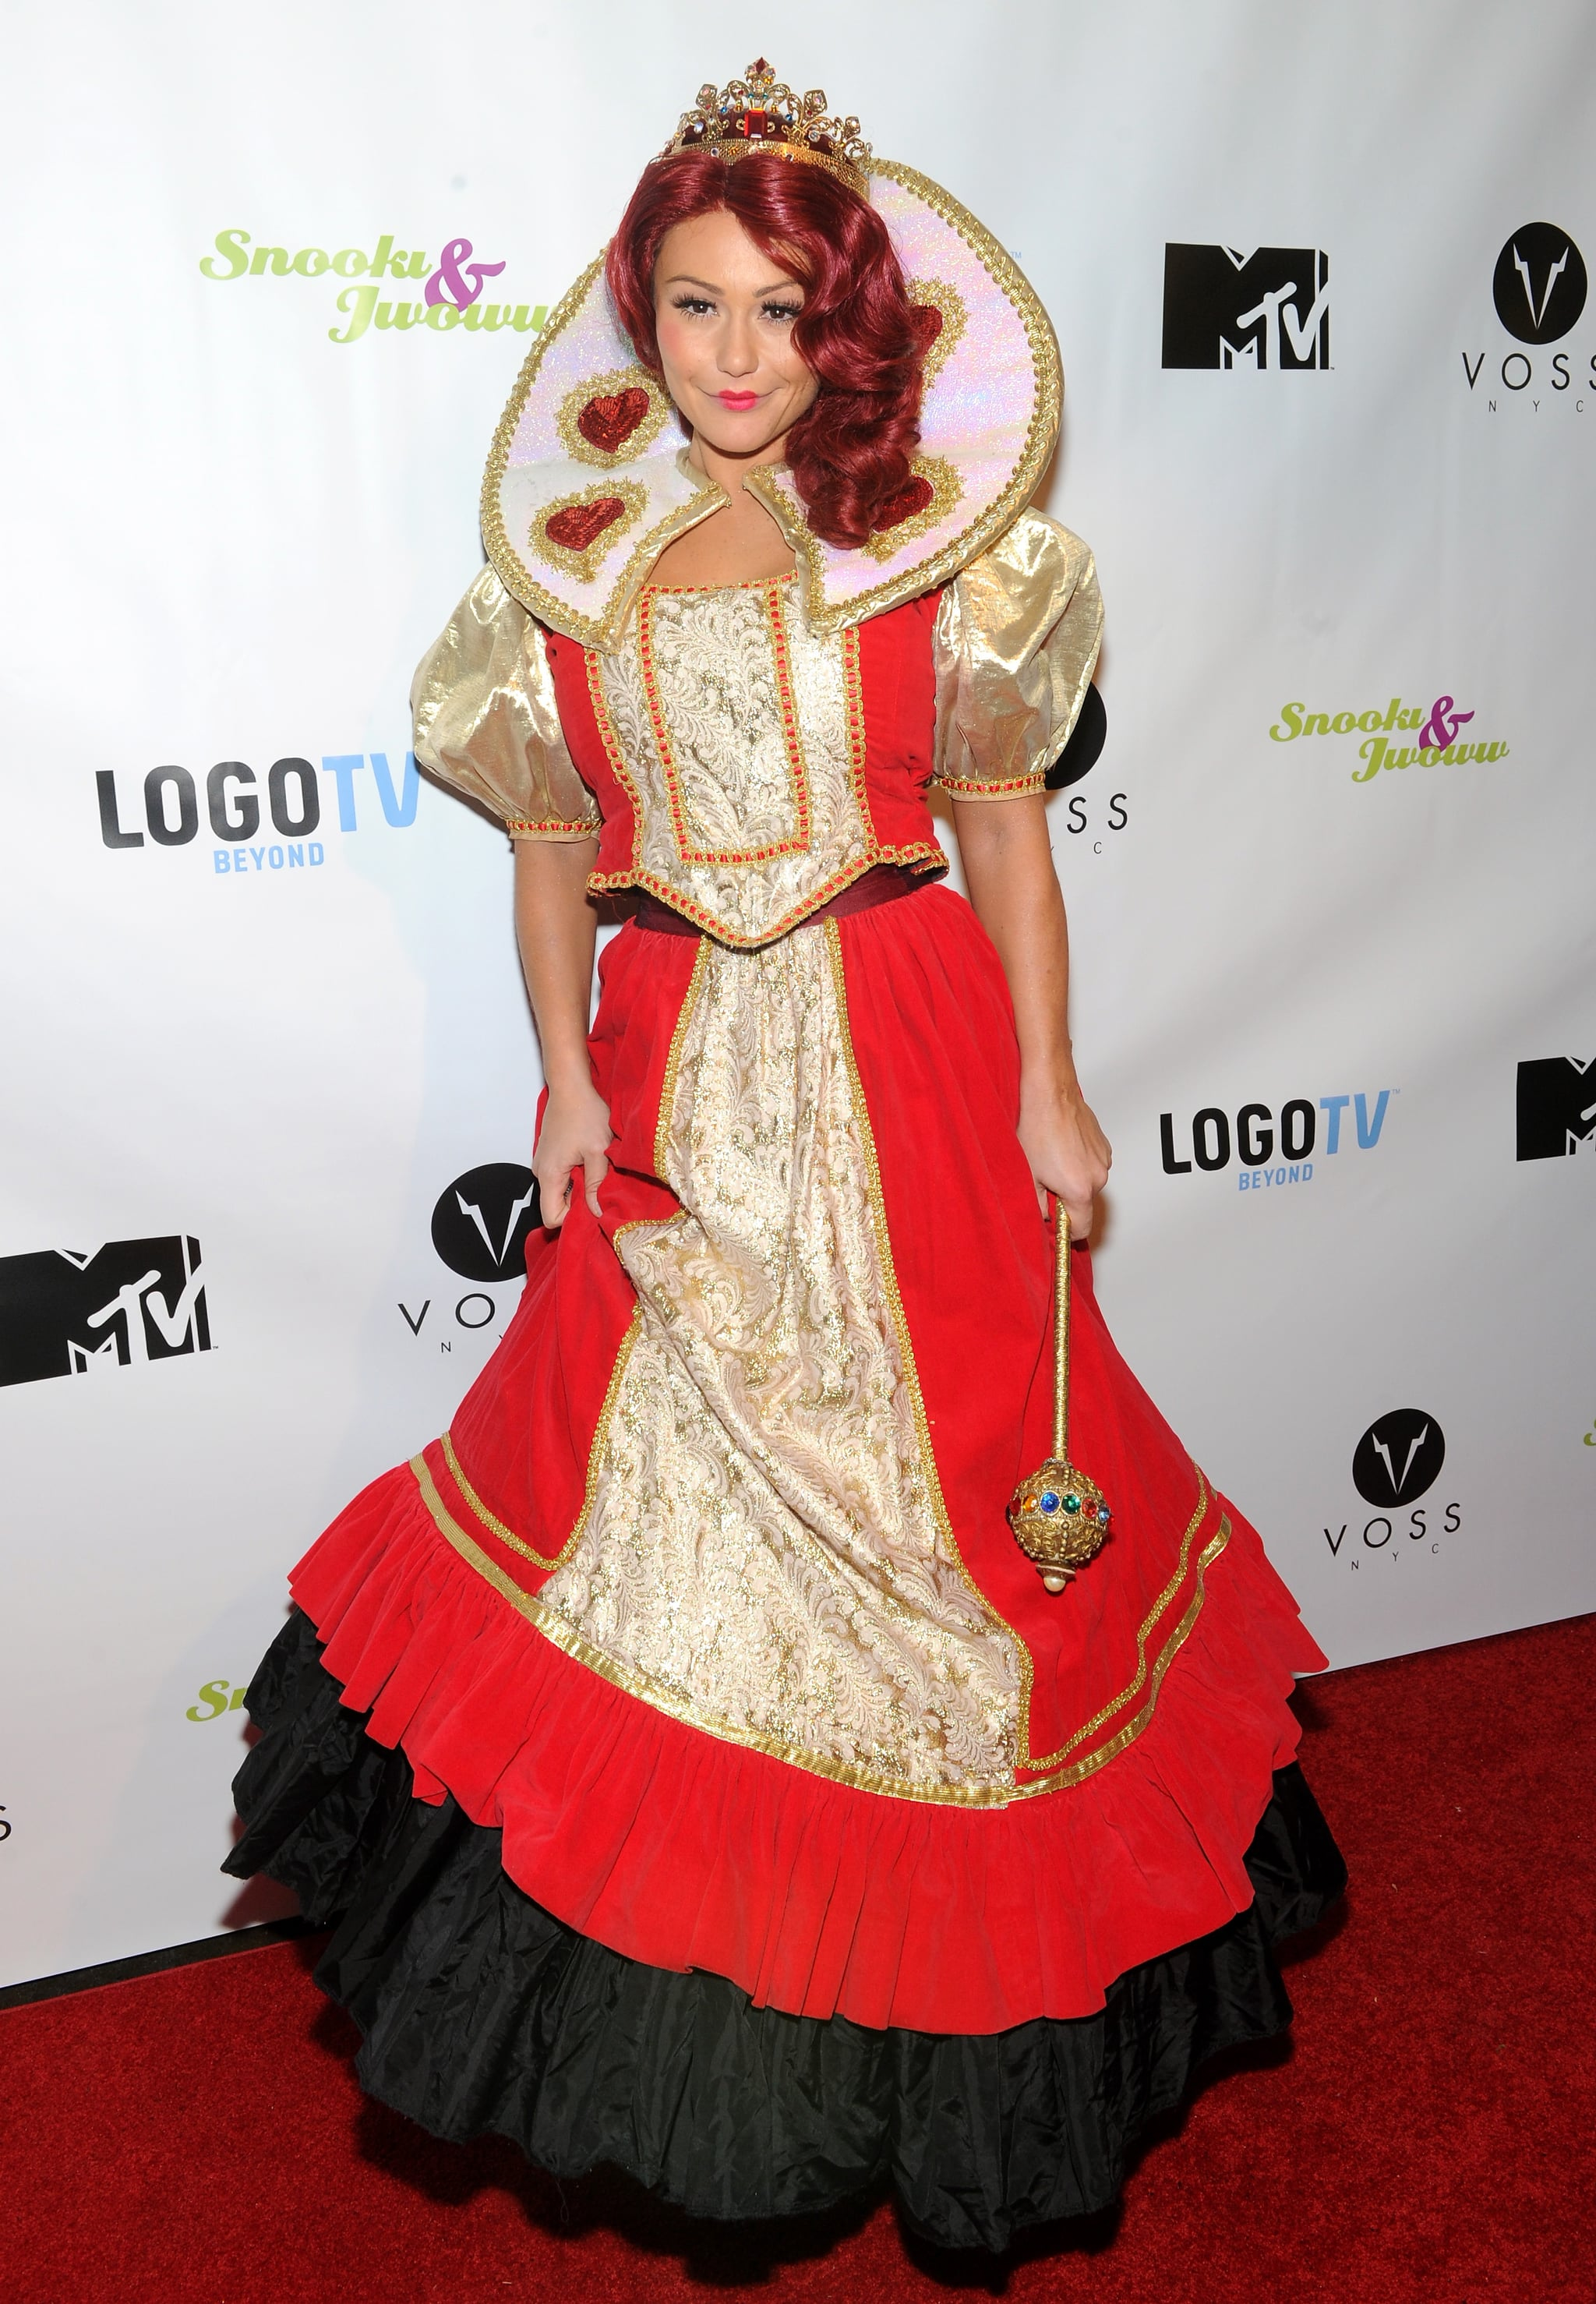 JWoww went all out as the Queen of Hearts at the Night of the Living Drag event she hosted with Snooki.